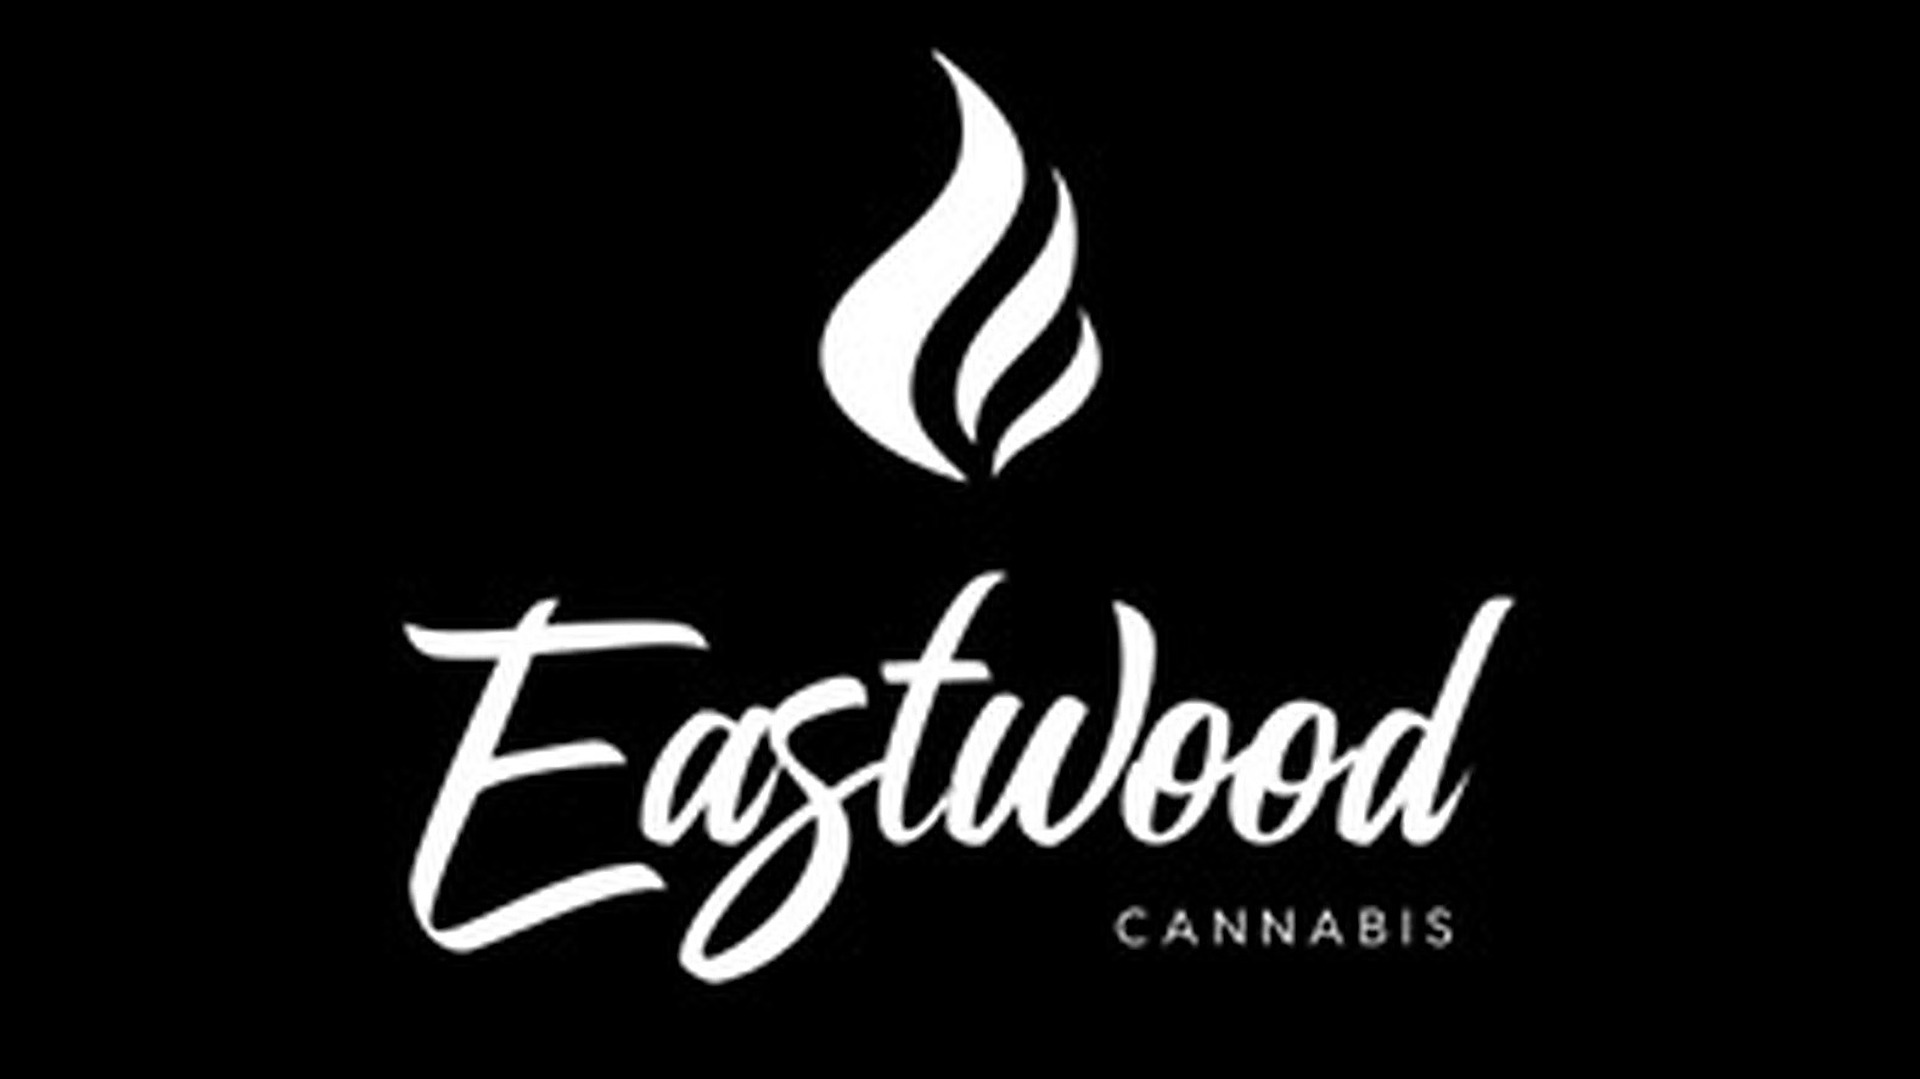 Eastwood Cannabis